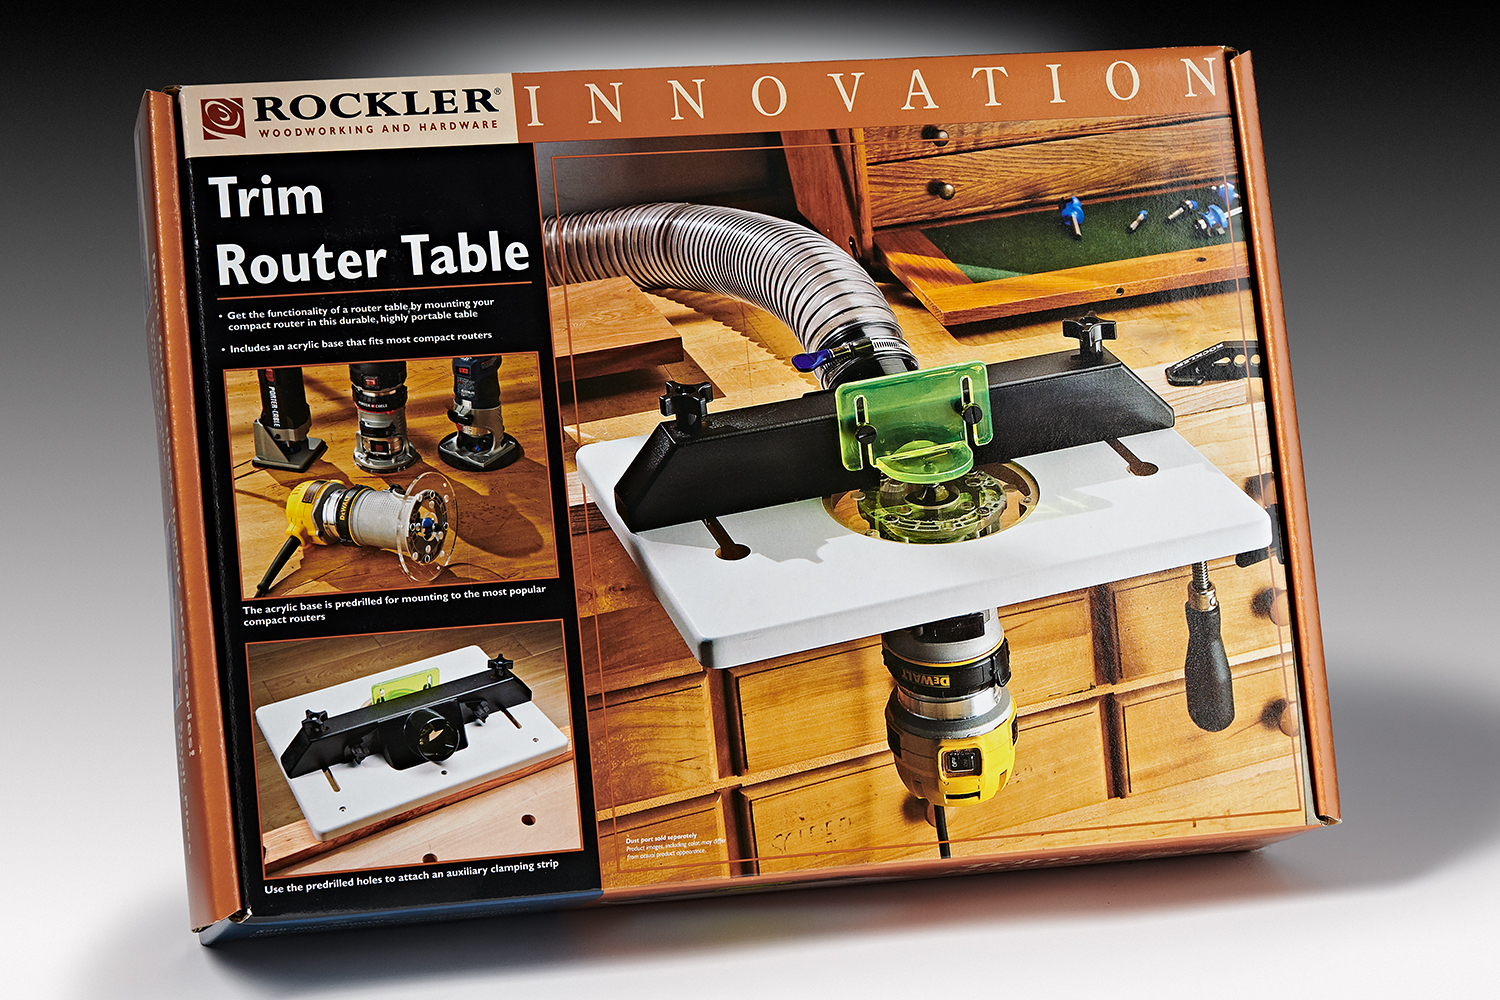 454665 #43550 RocklerTrimRouterTable 9047 Copy